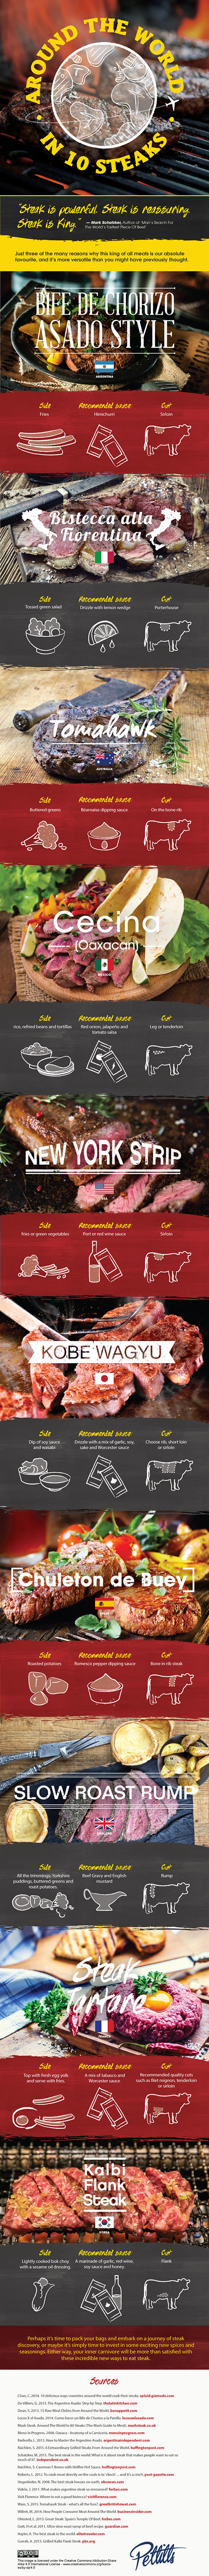 X-Ways-to-eat-steak-around-the-world-DV6 smaller